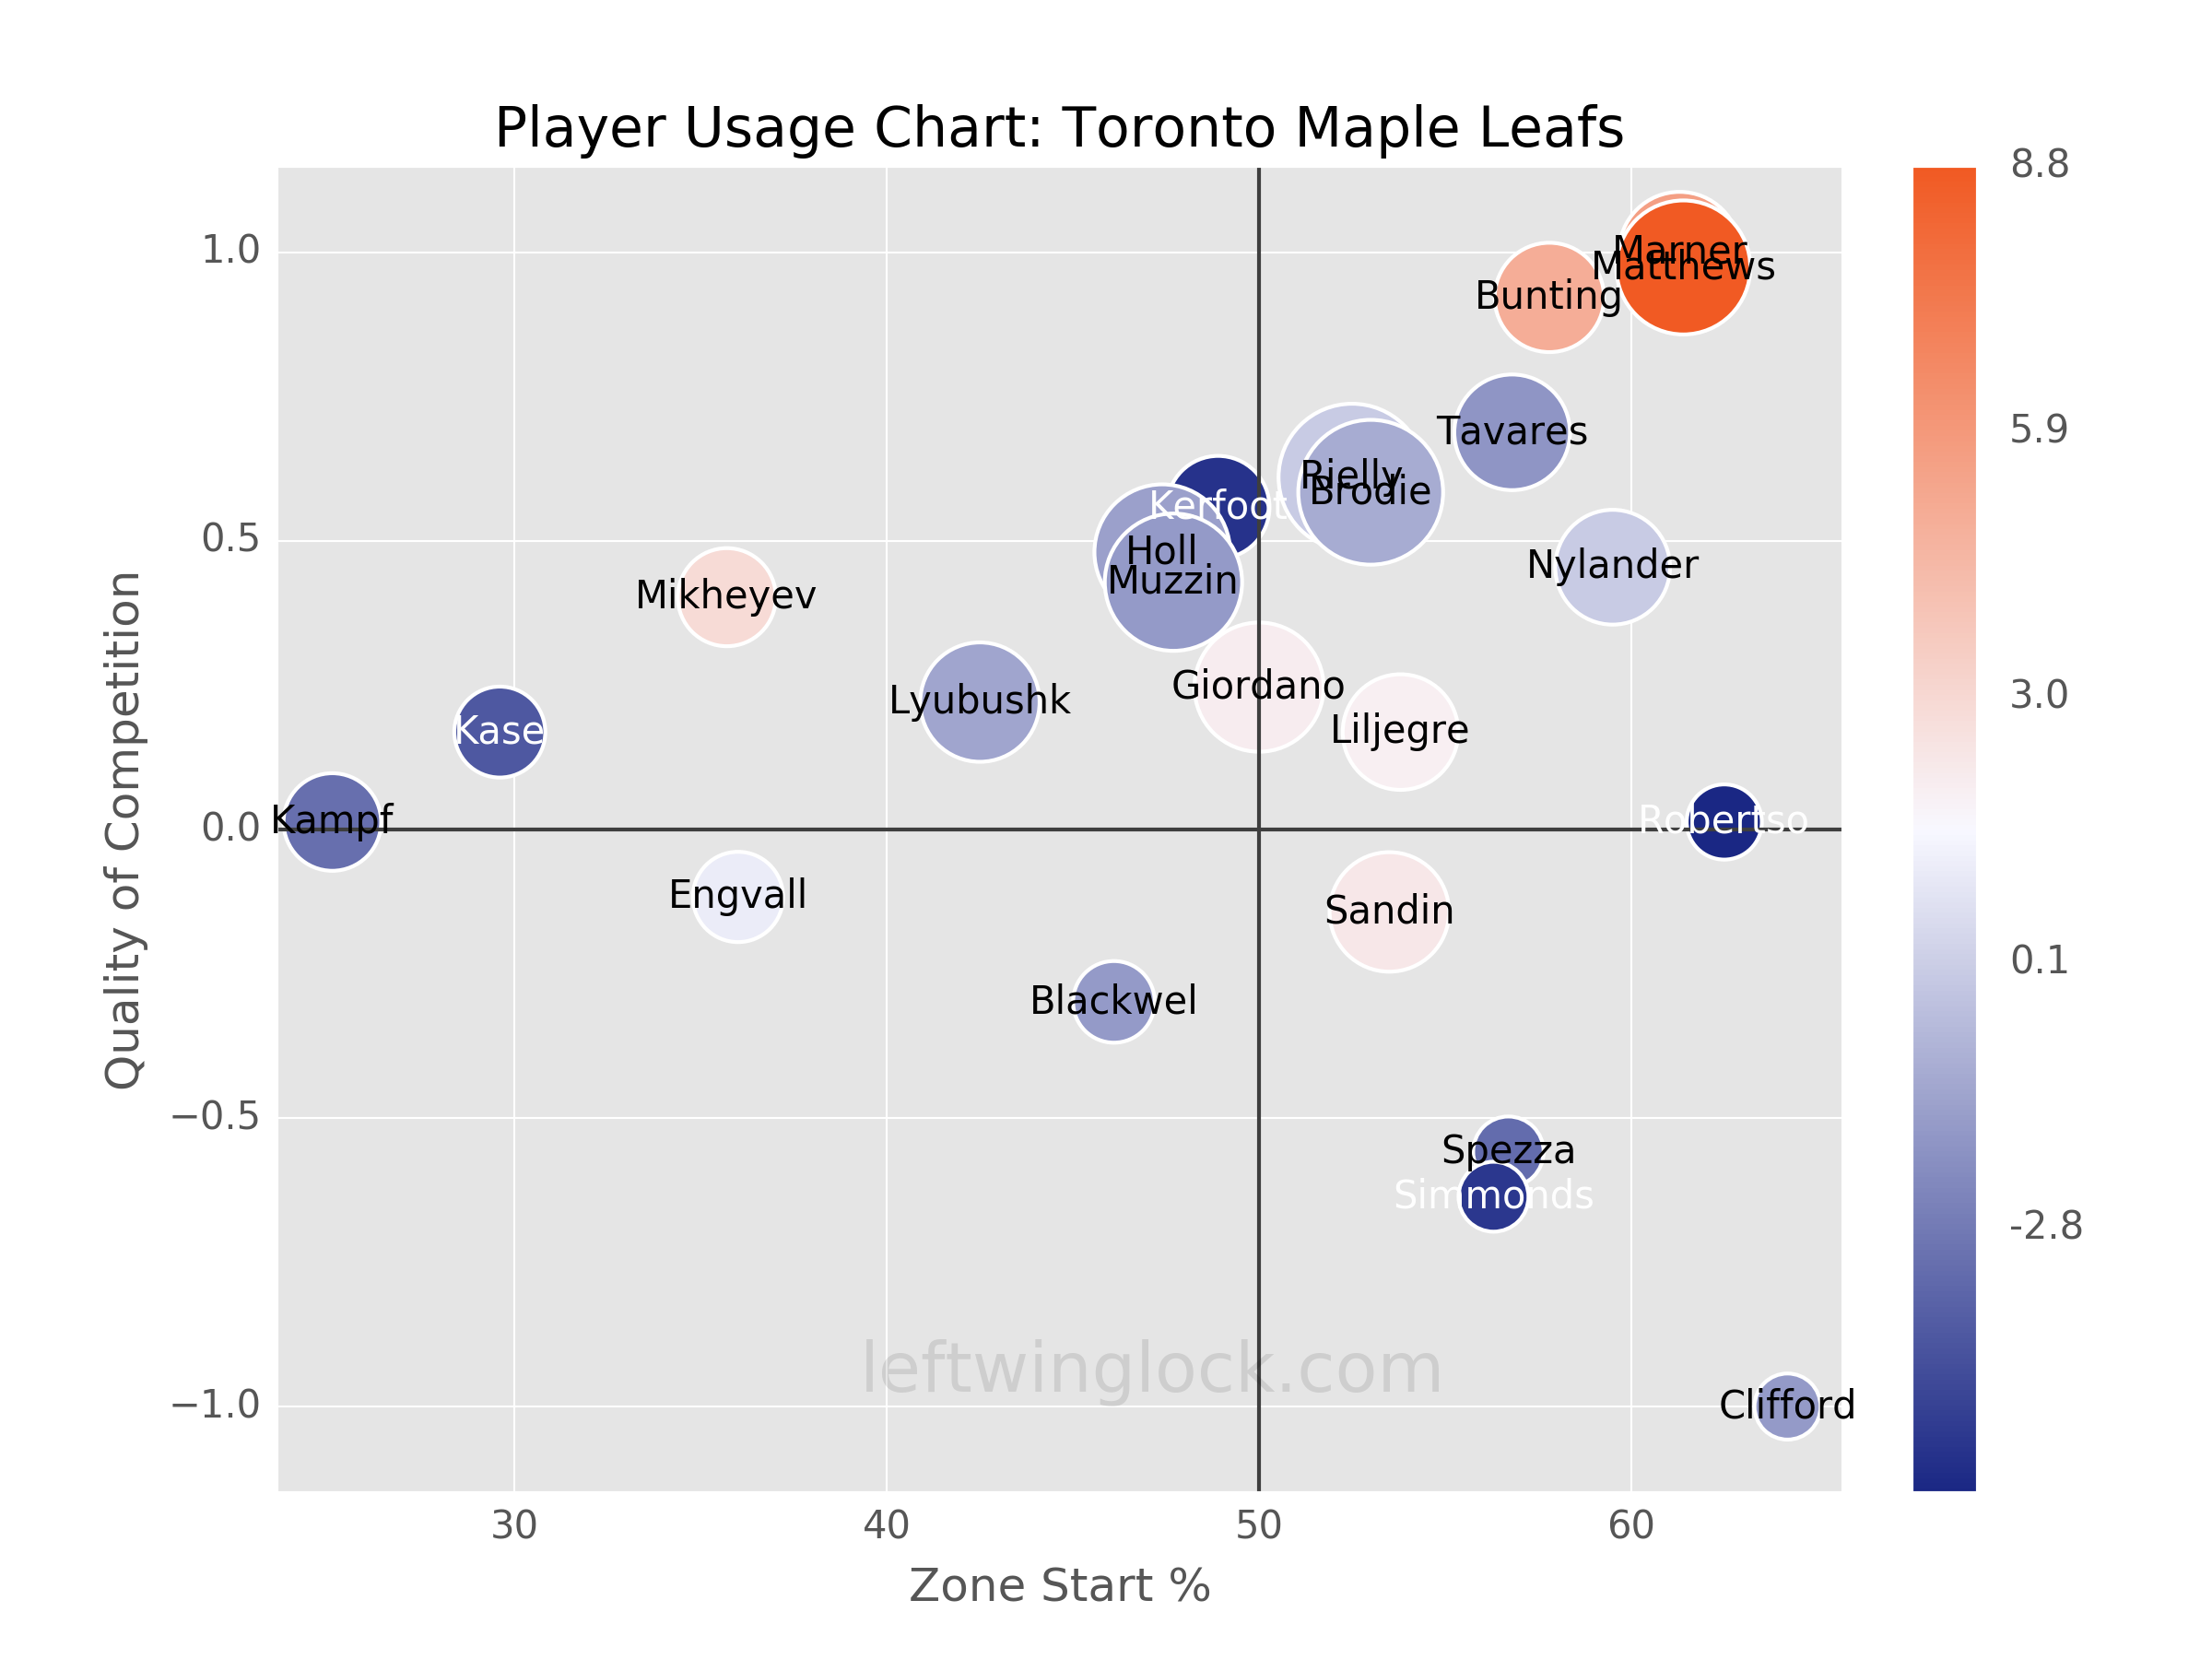 Toronto Maple Leafs Player Usage Chart